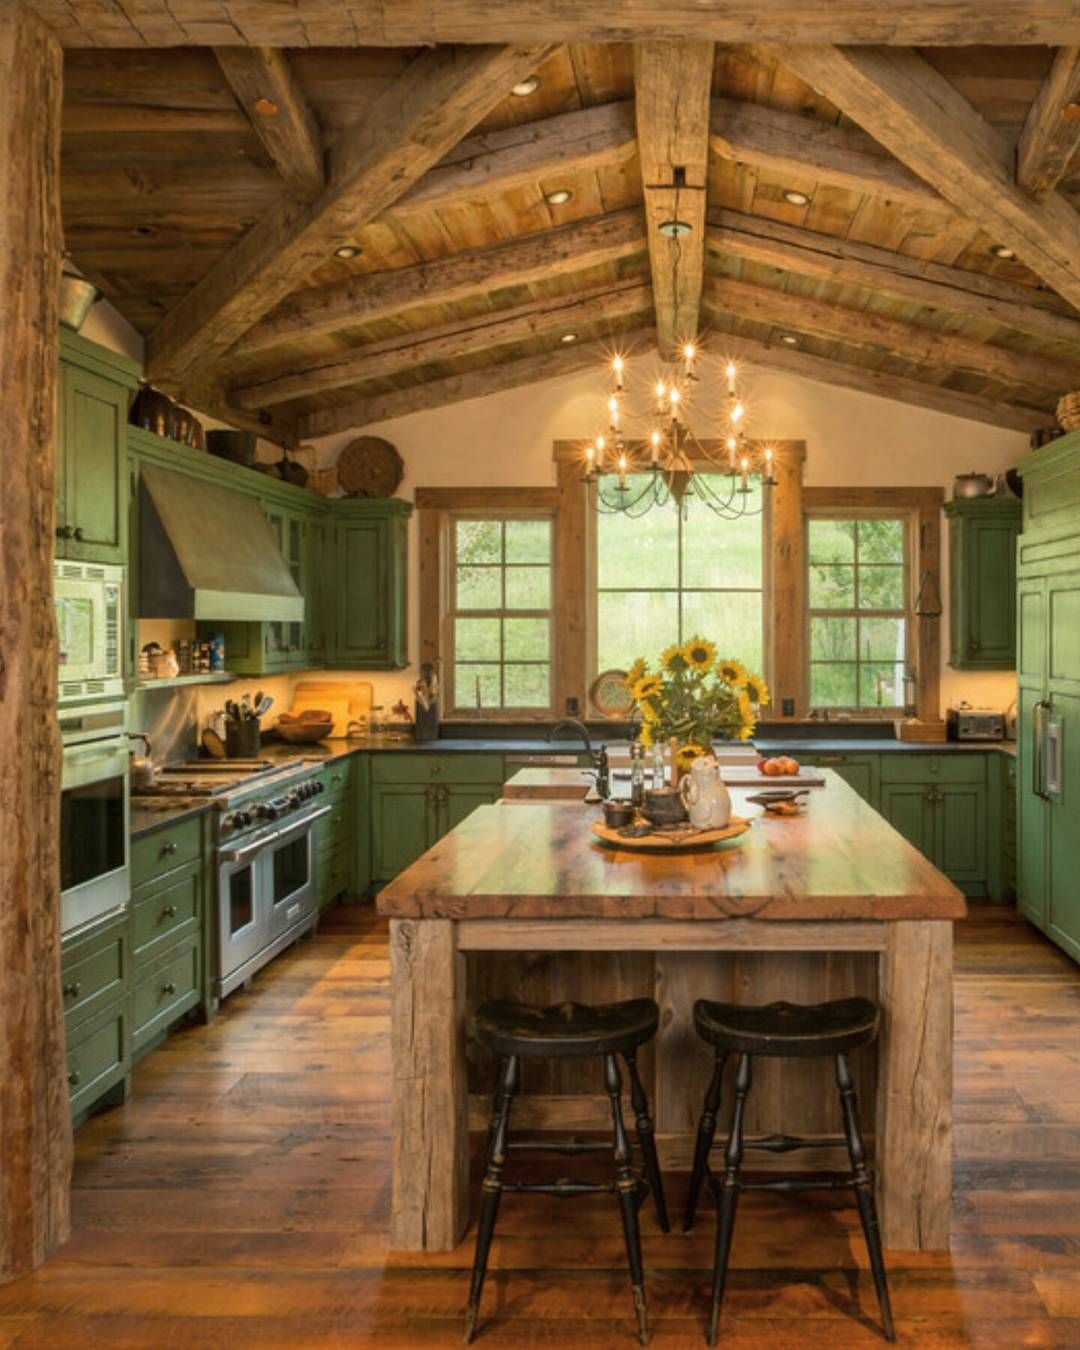 Rusticdecor Cabinetmaking Rust Furniture Southwest Stone Country Loghome Reclaimed Decoration Farm Style Kitchen Western Kitchen Decor Homey Kitchen